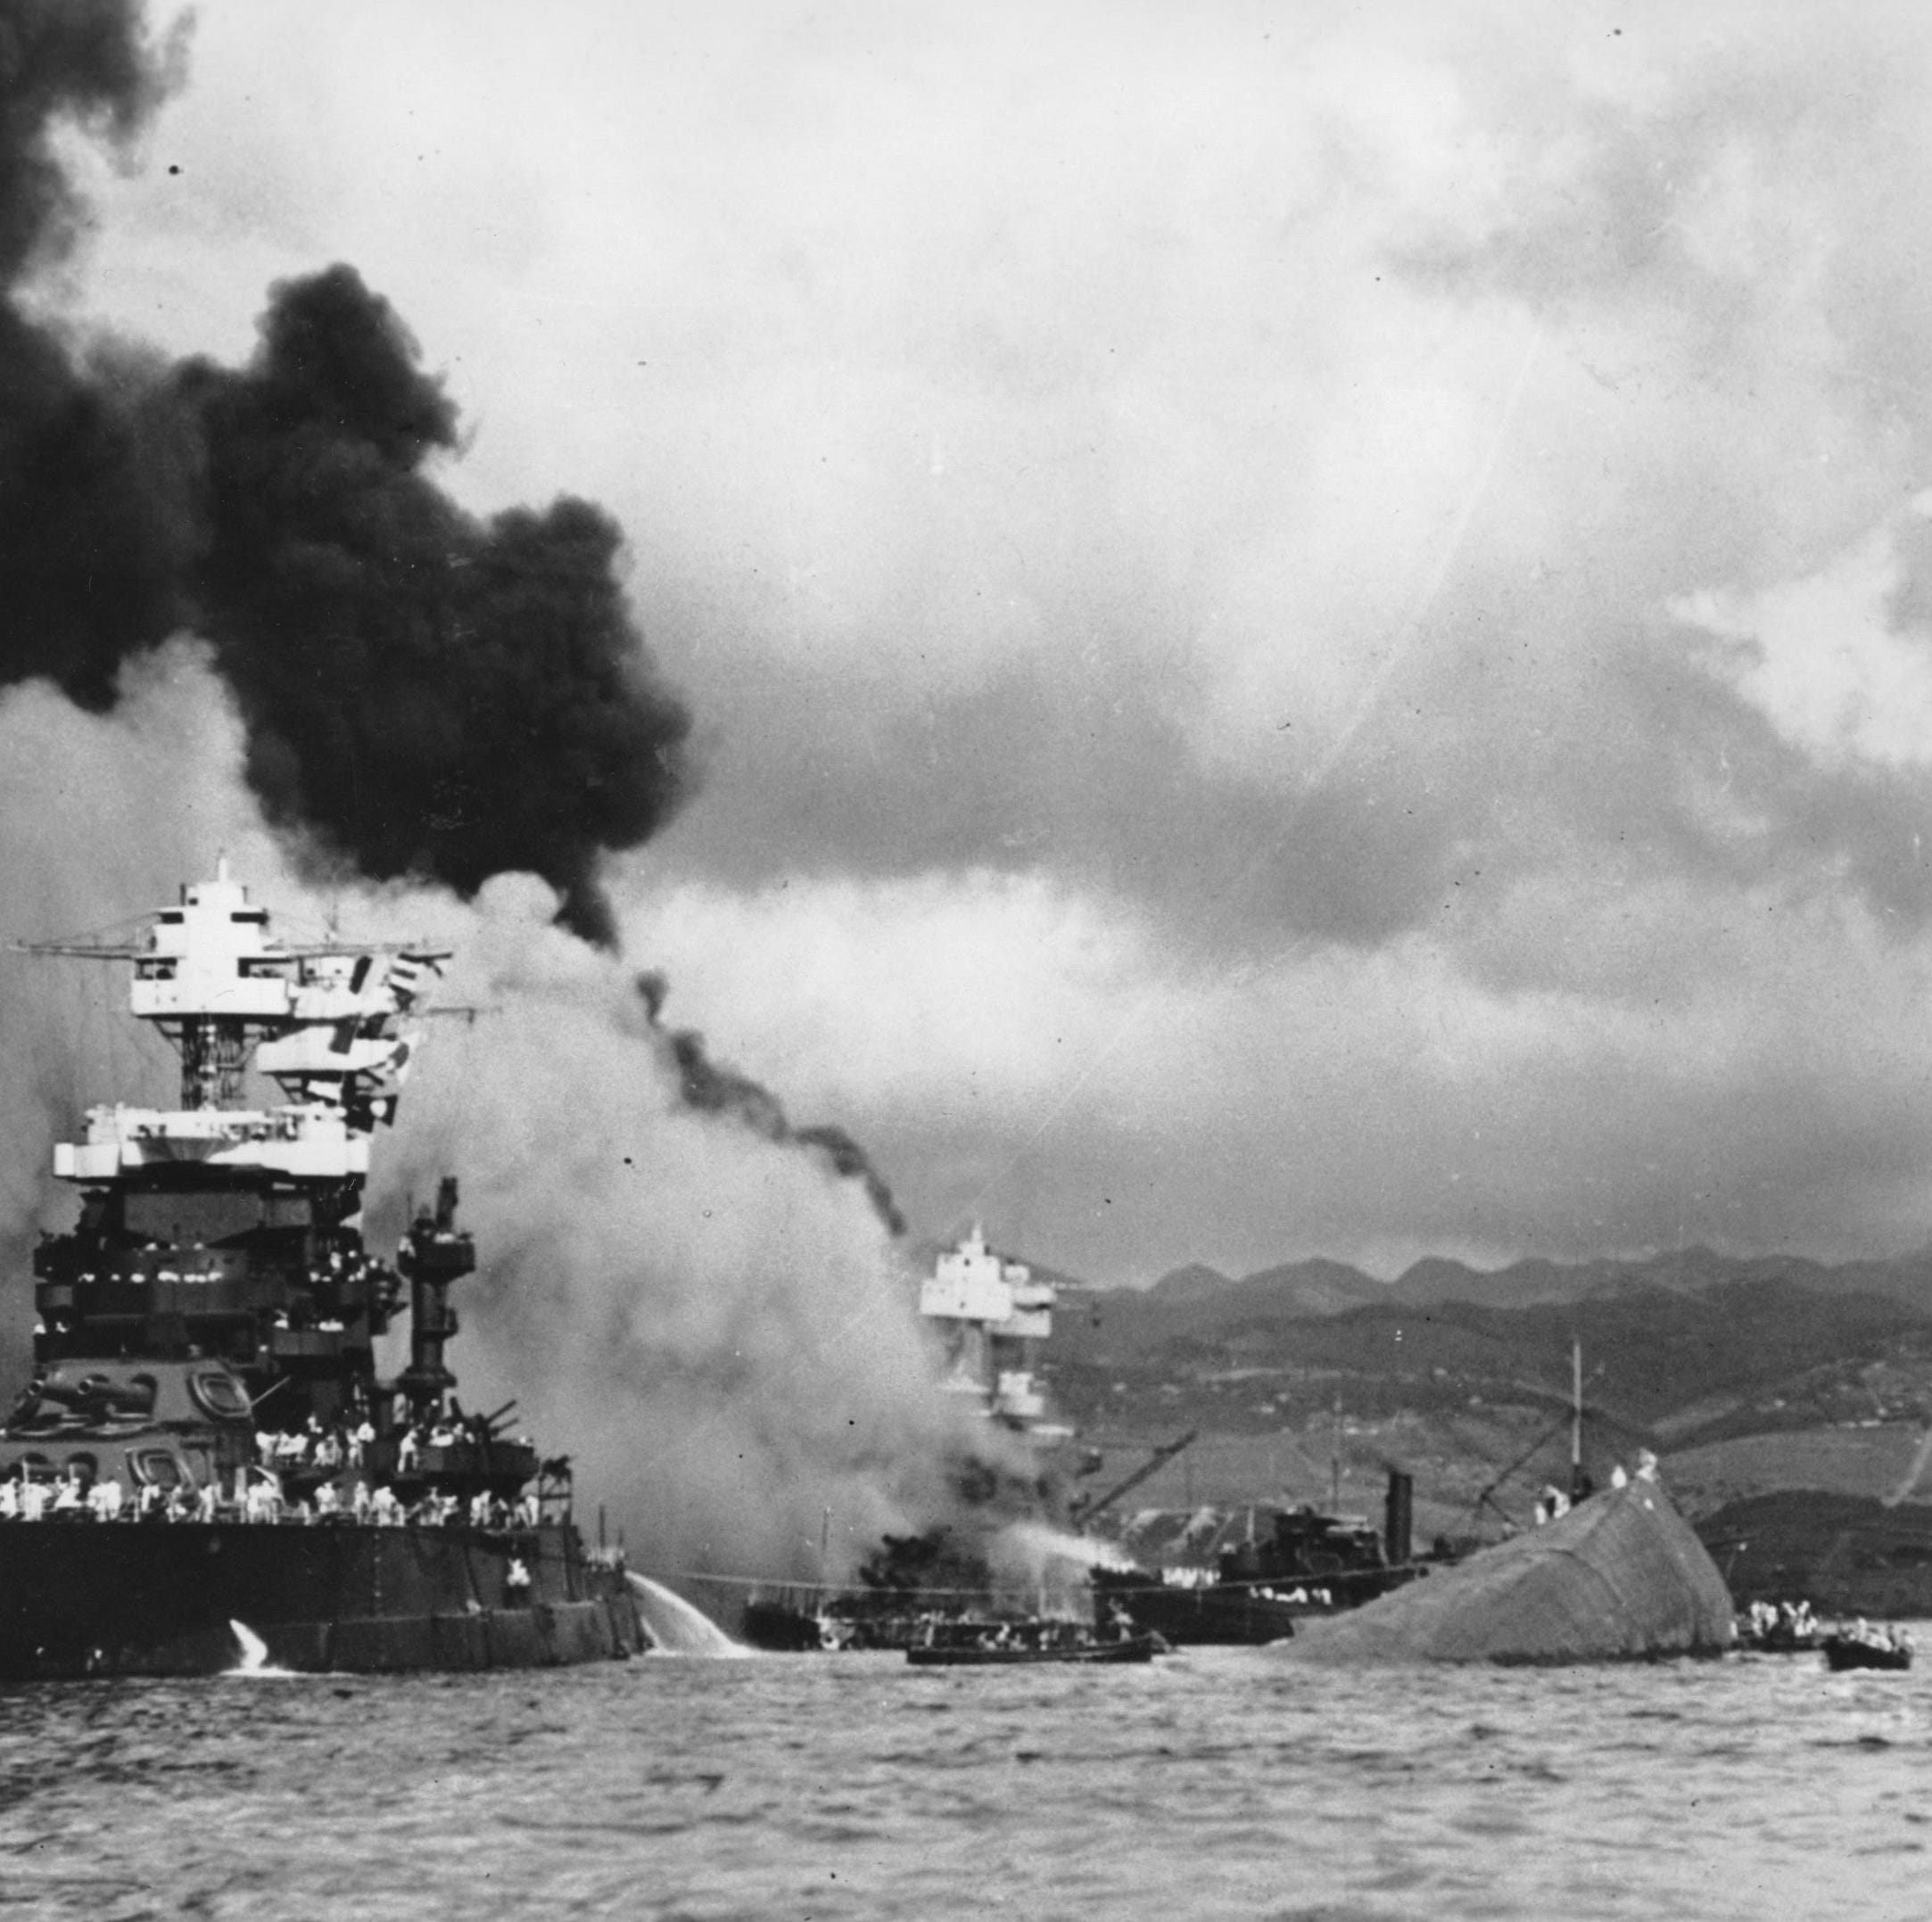 Laramie, Wyoming sailor killed at Pearl Harbor identified 77 years later